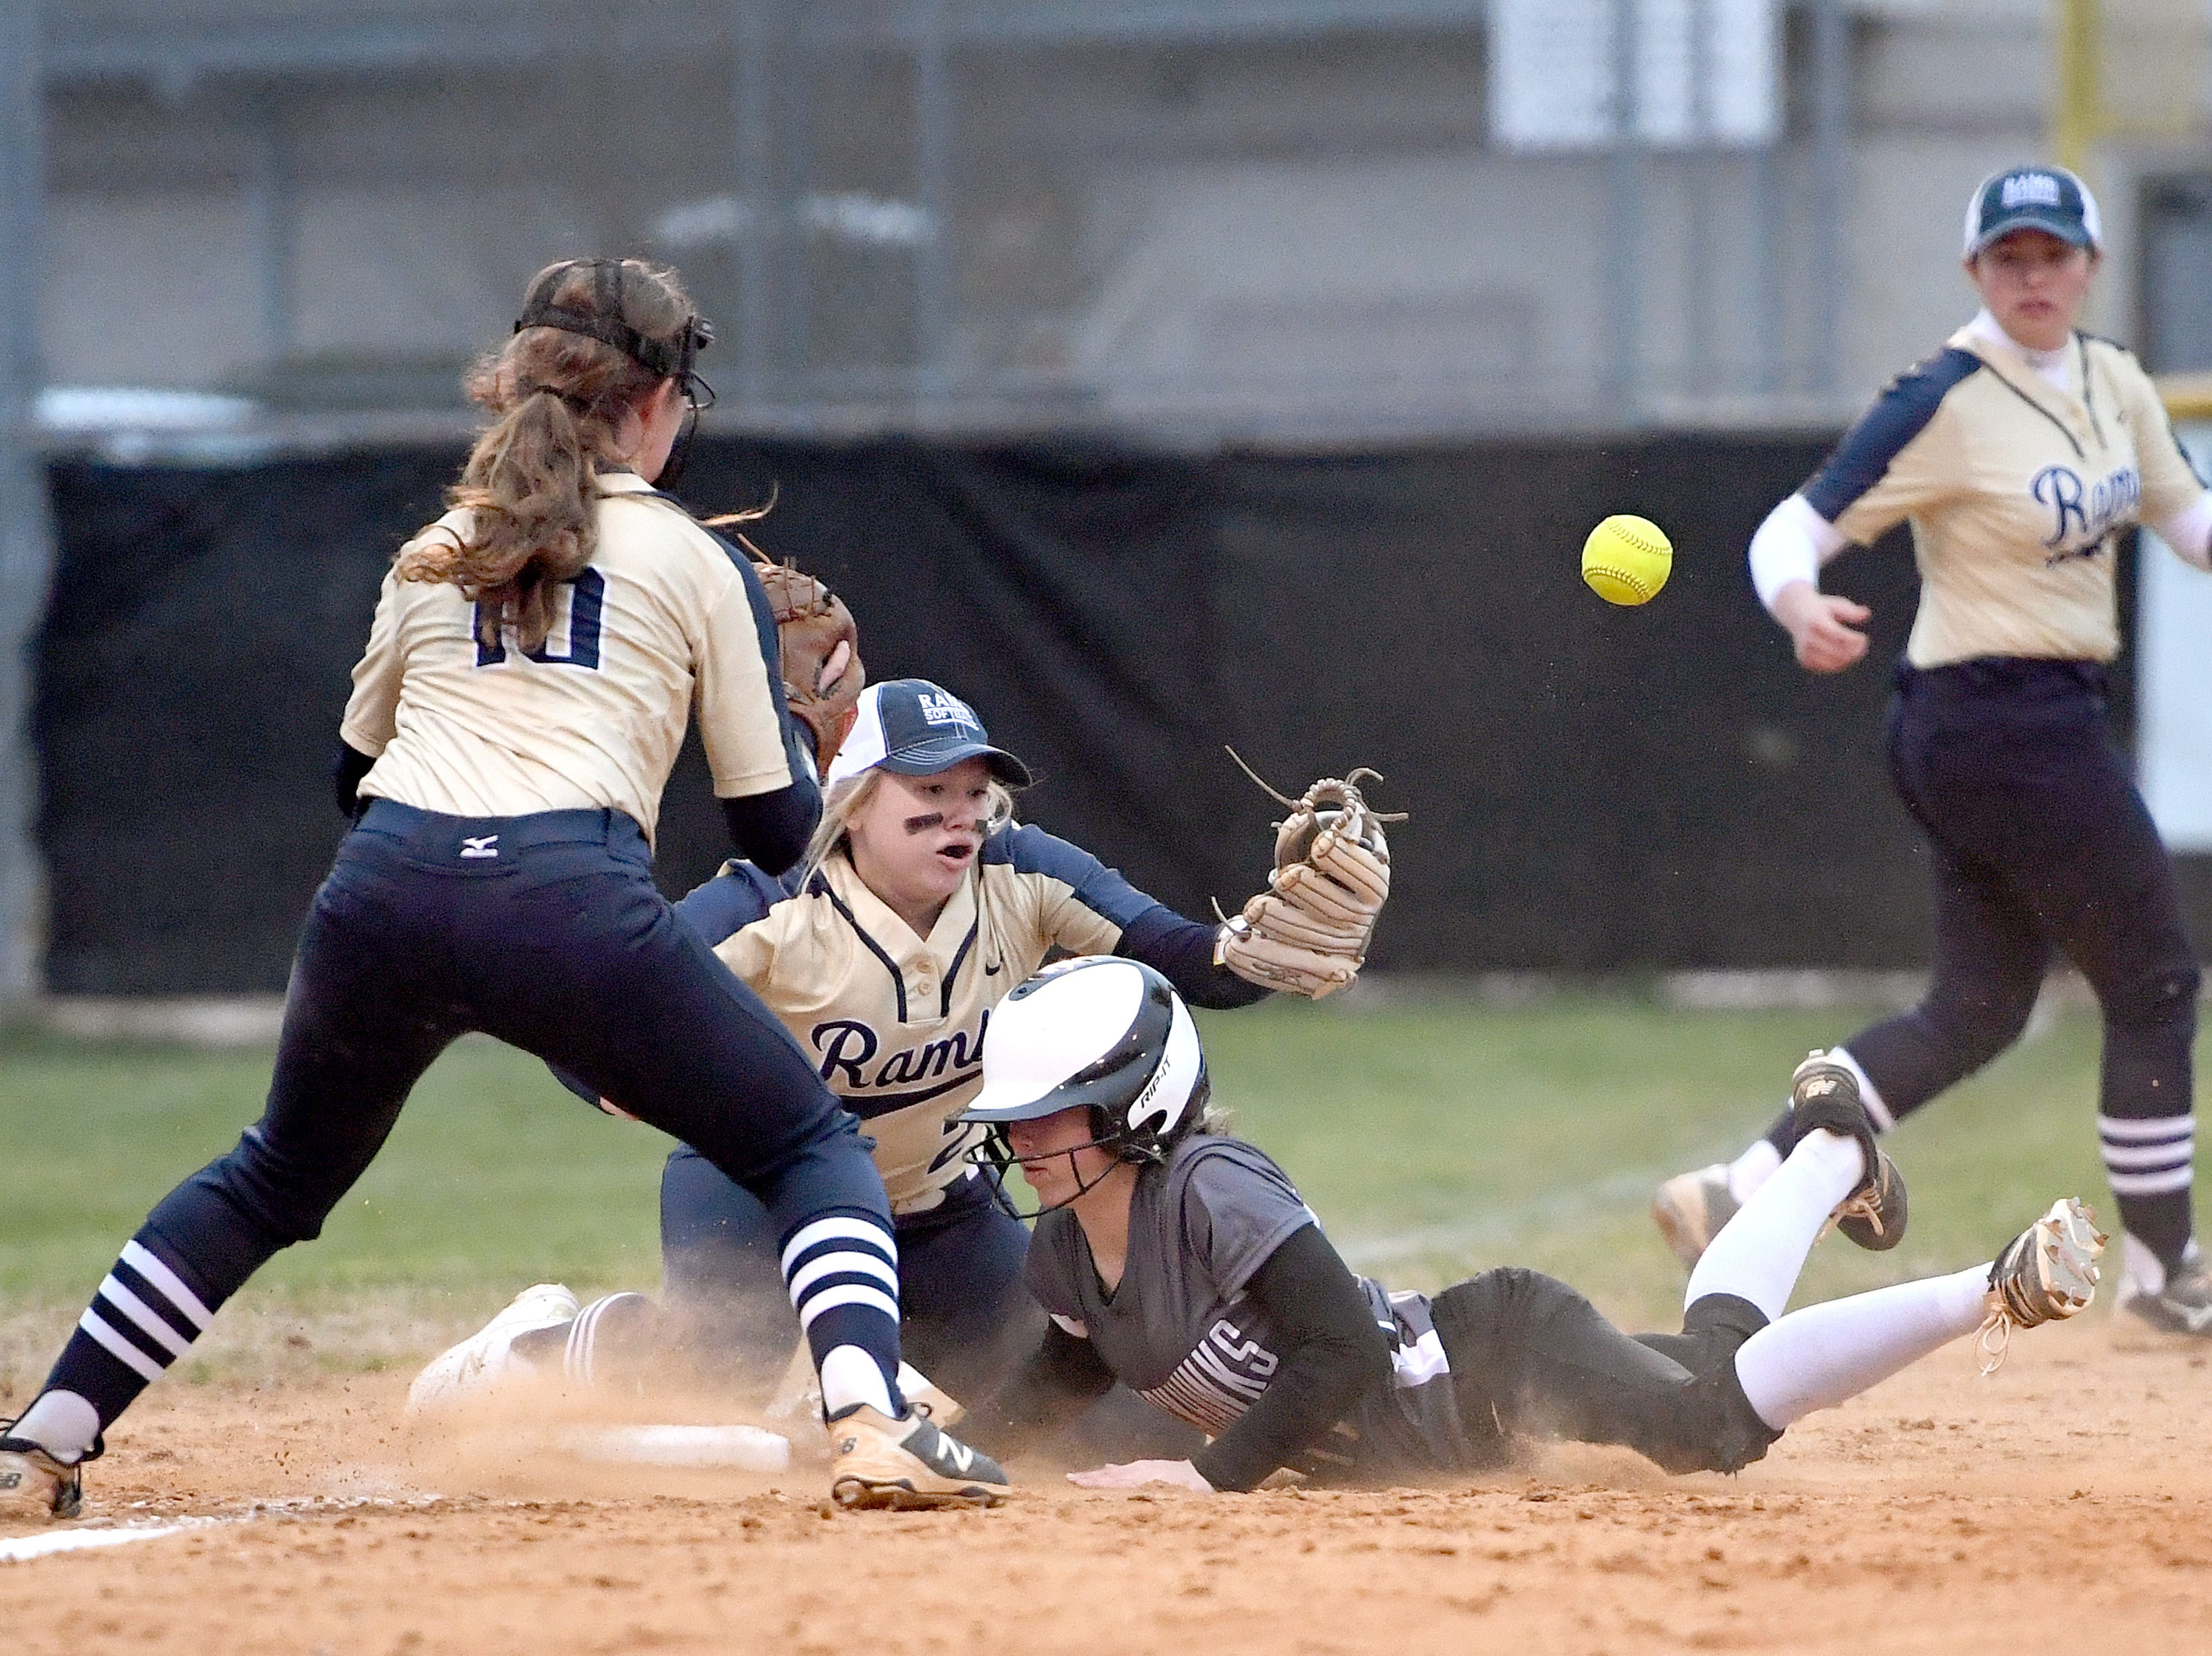 North Buncombe's Riley McCurry slides safely into third base as Roberson's Sydni Owens bobbles the ball during their game at North Buncombe High School on March 7, 2019. North Buncombe defeated Roberson 3-1.